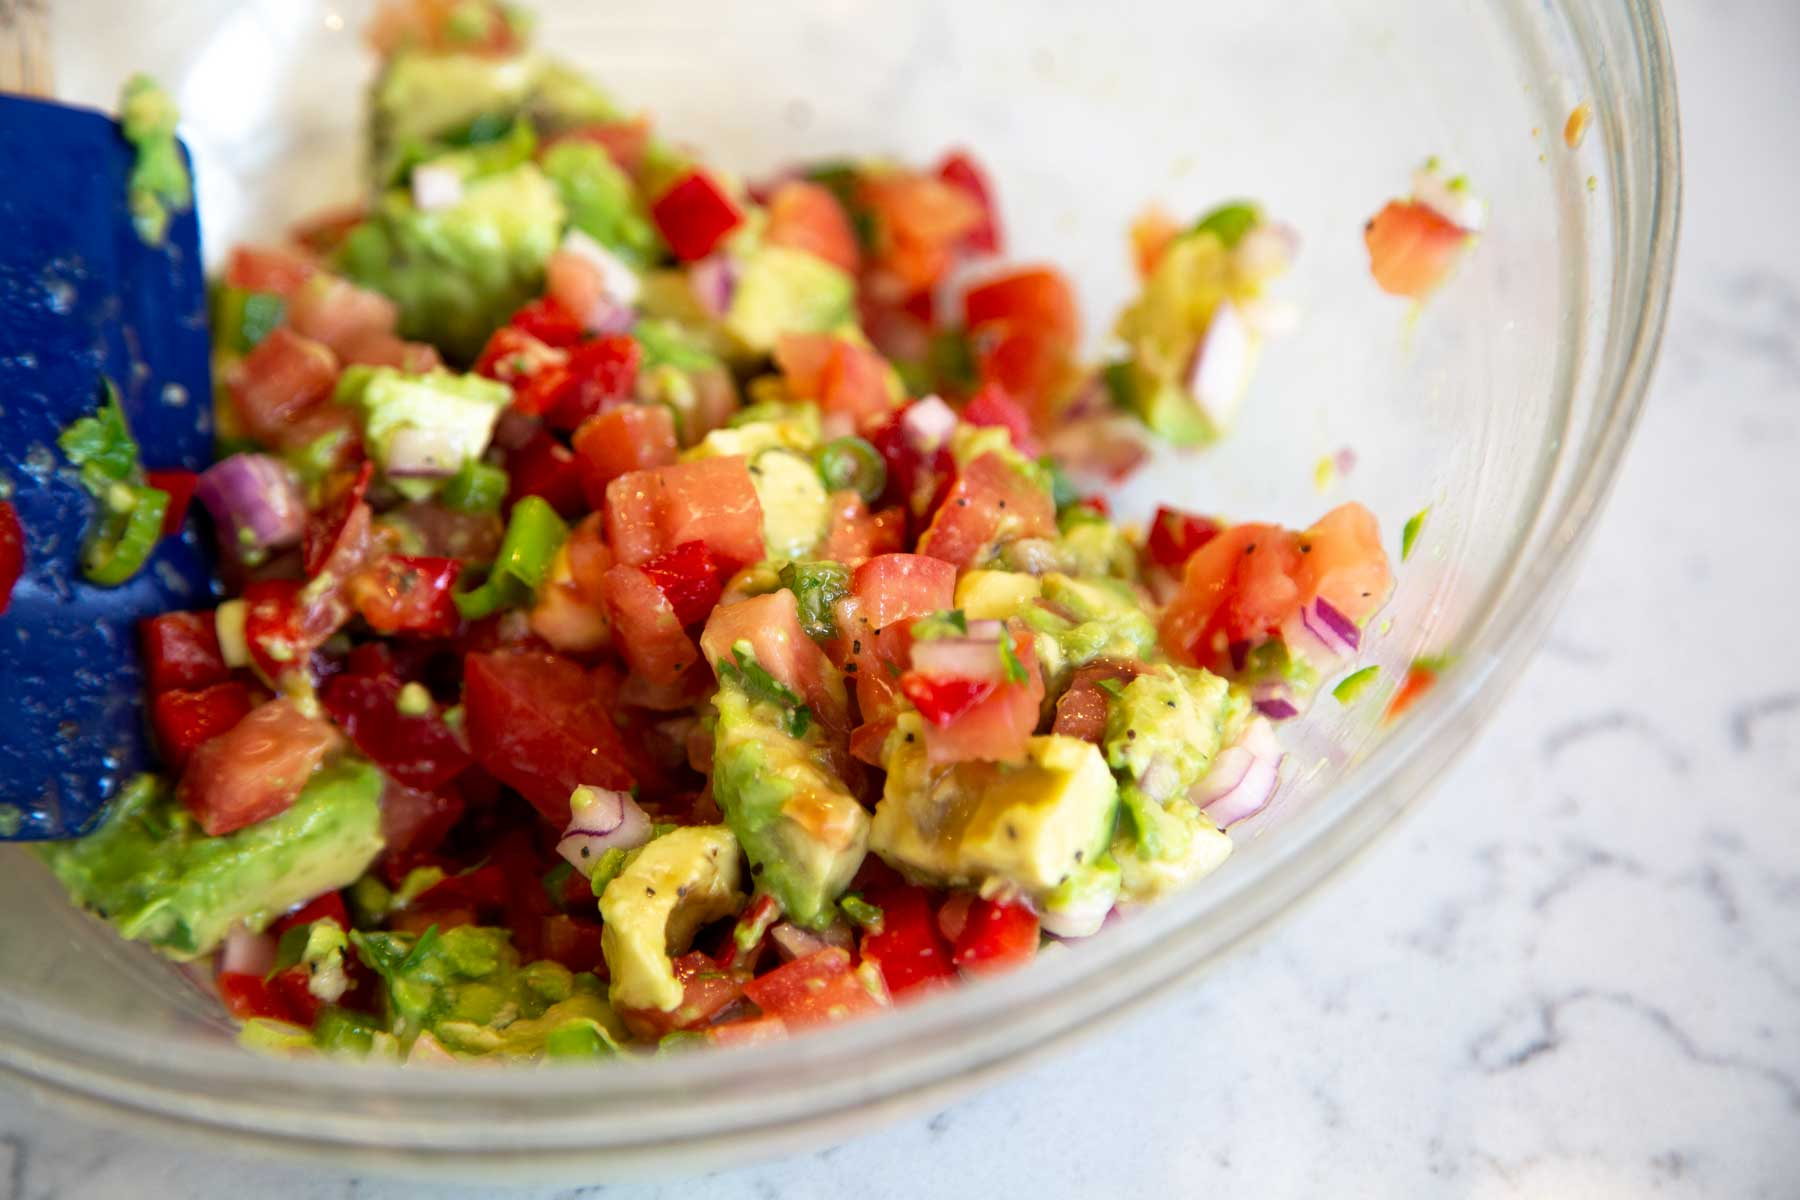 Fresh avocado, tomato, onion and other ingredients in a bowl